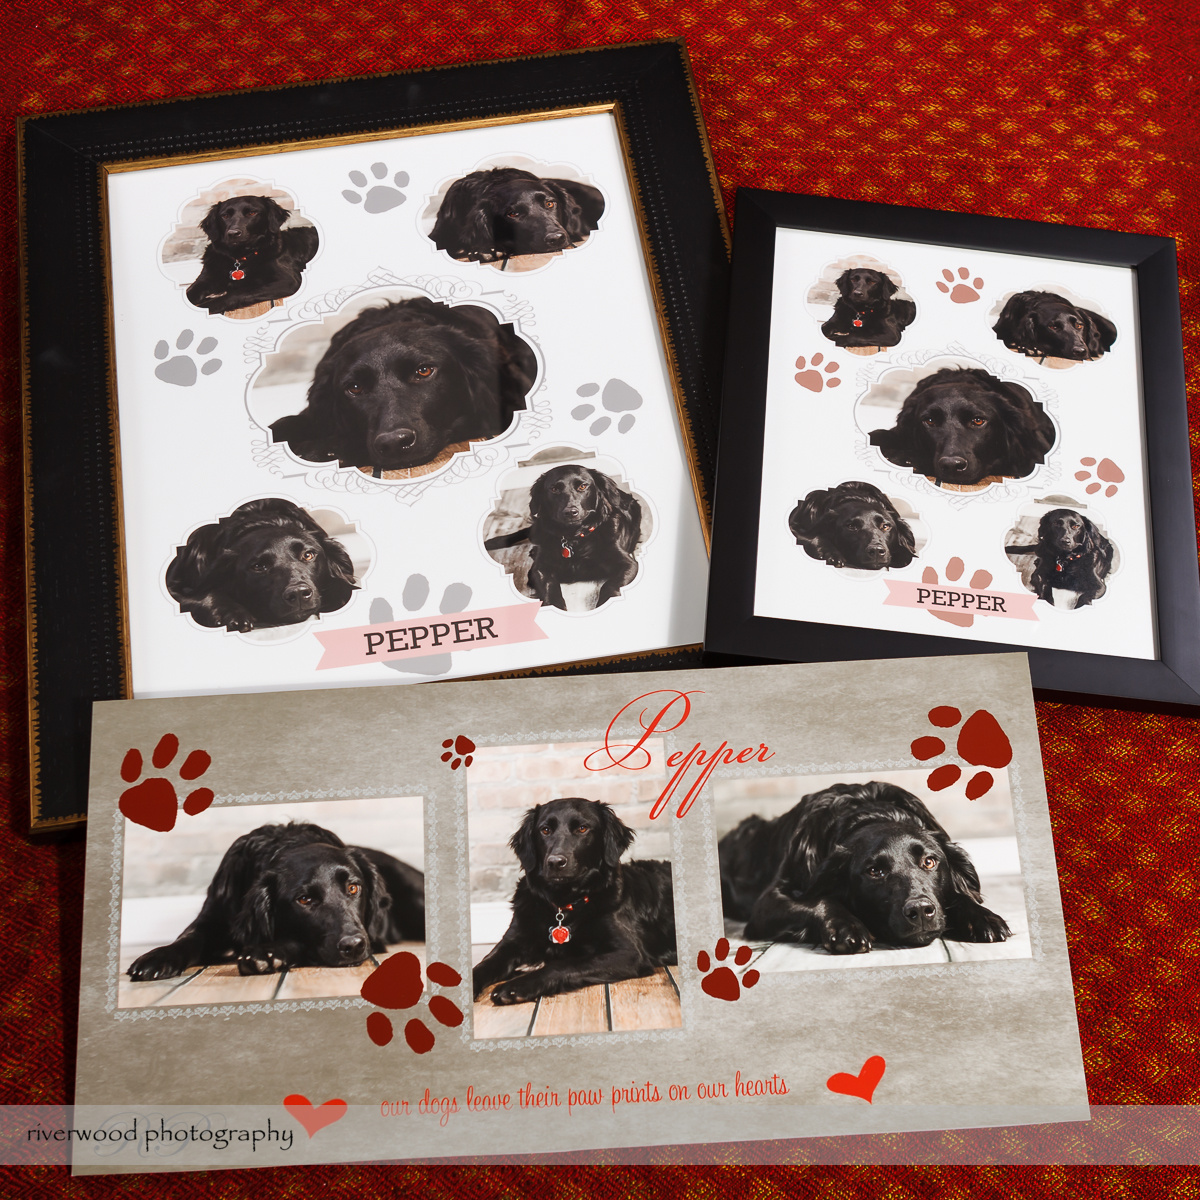 Dog Day 2013 Product Samples